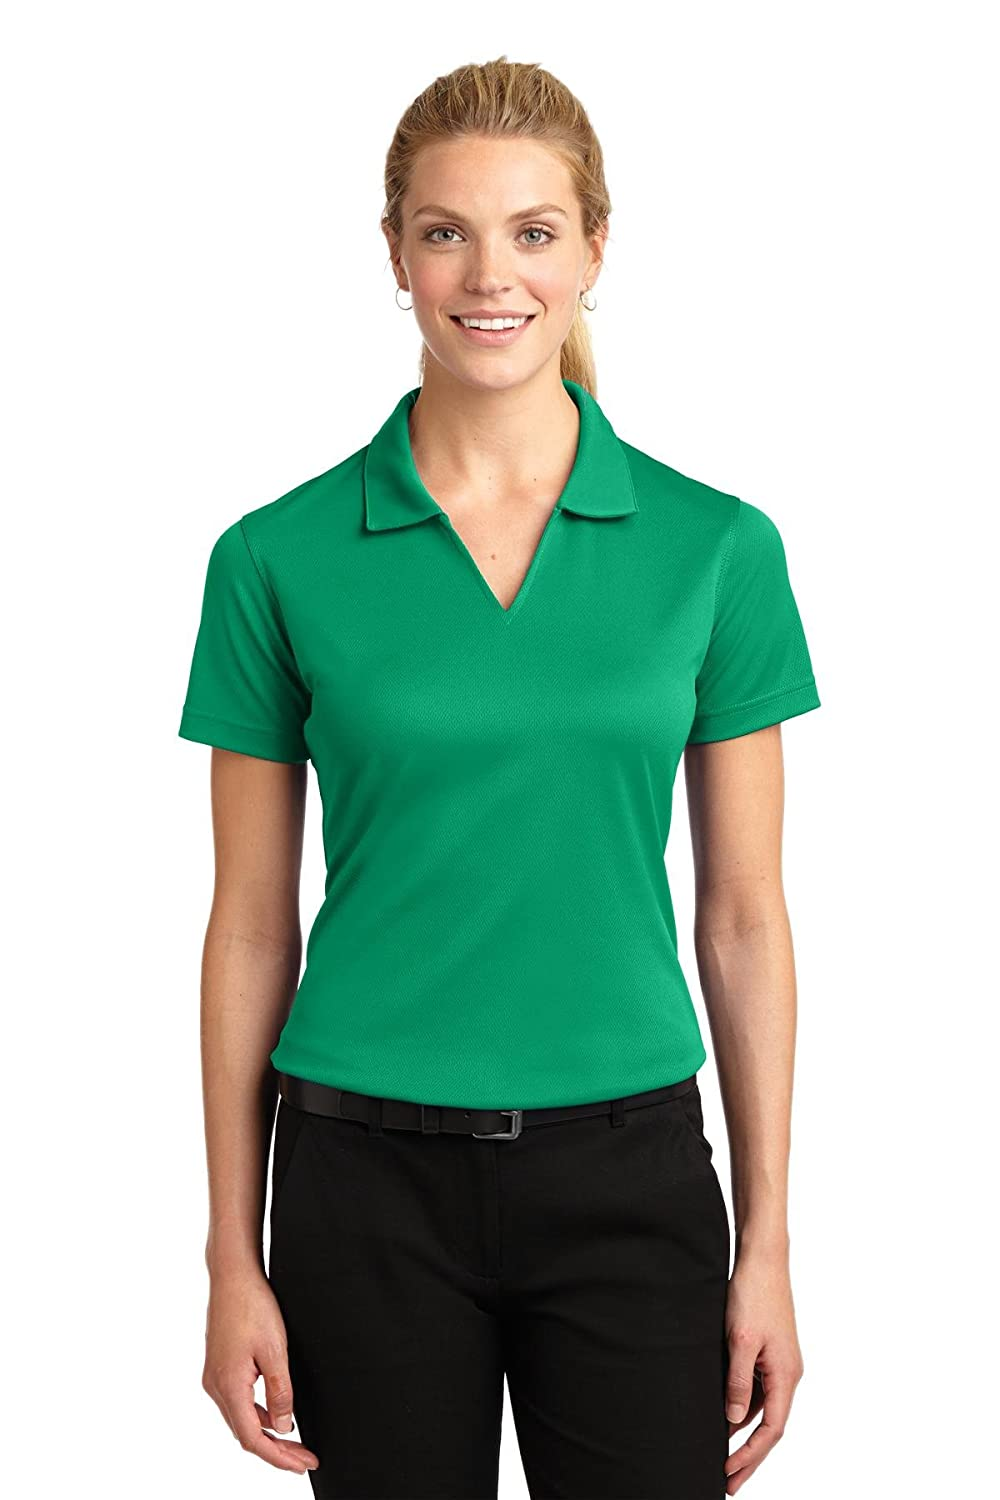 Sport-Tek Women's V Neck Lightweight Wick Moisture Polo Shirt L469